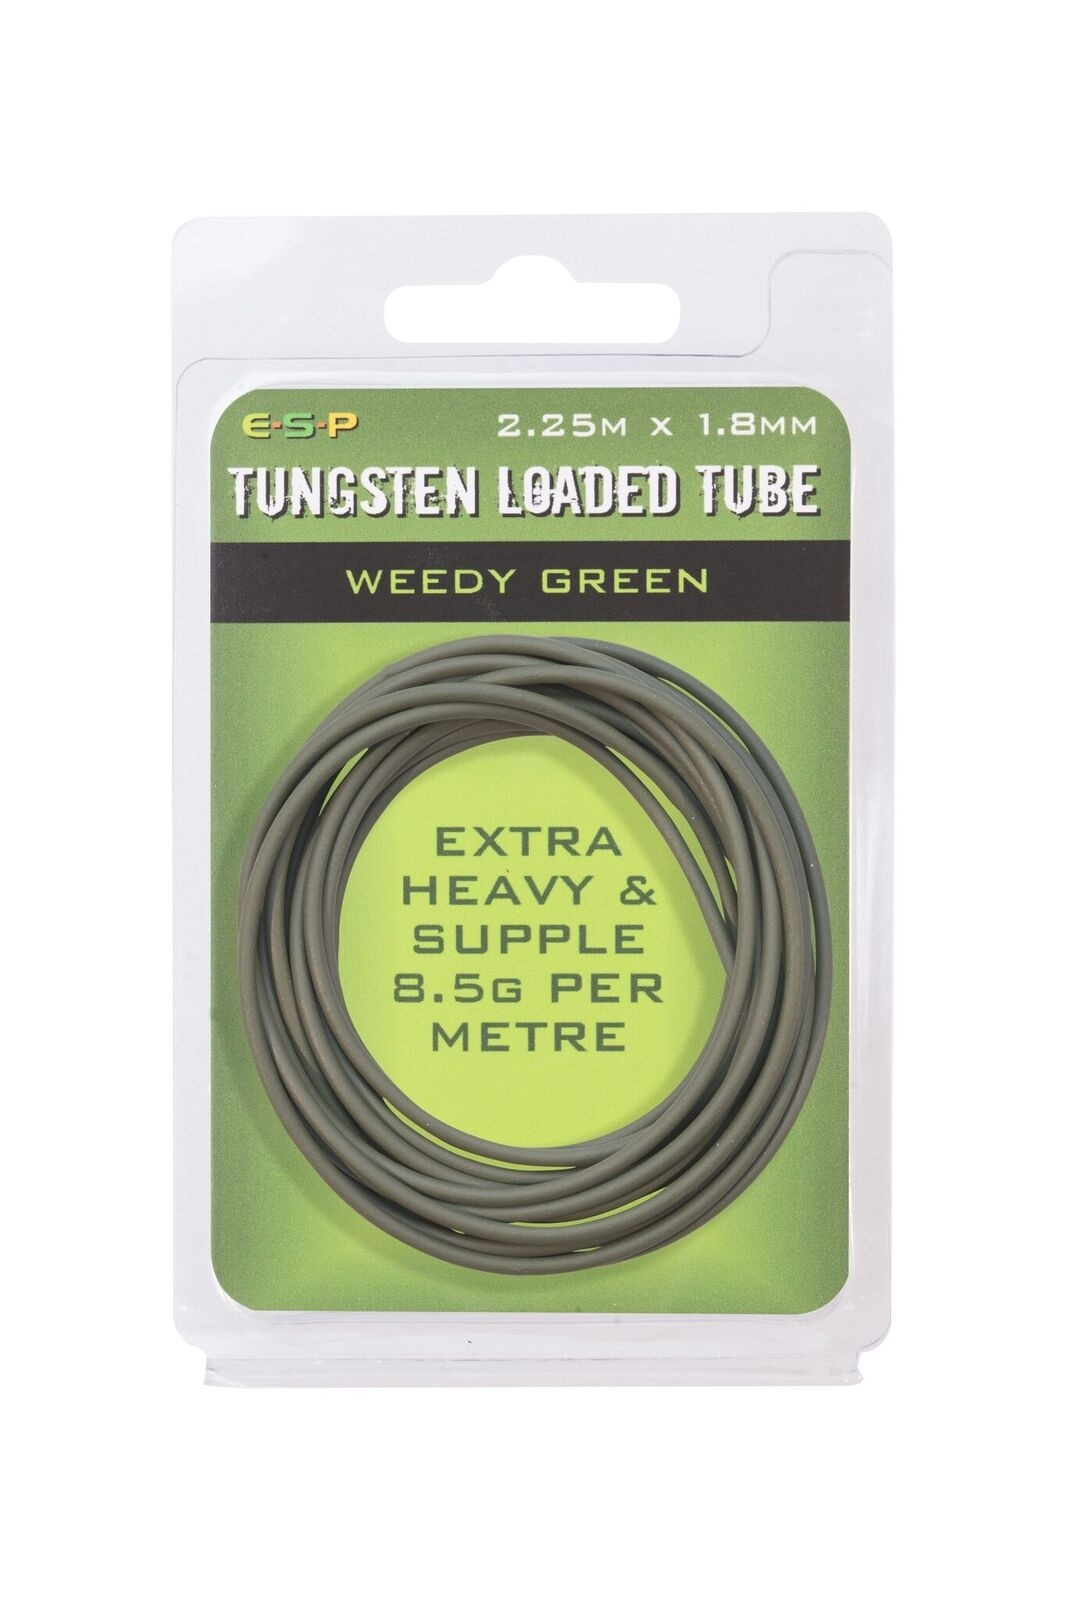 ESP Tungsten Loaded Tube